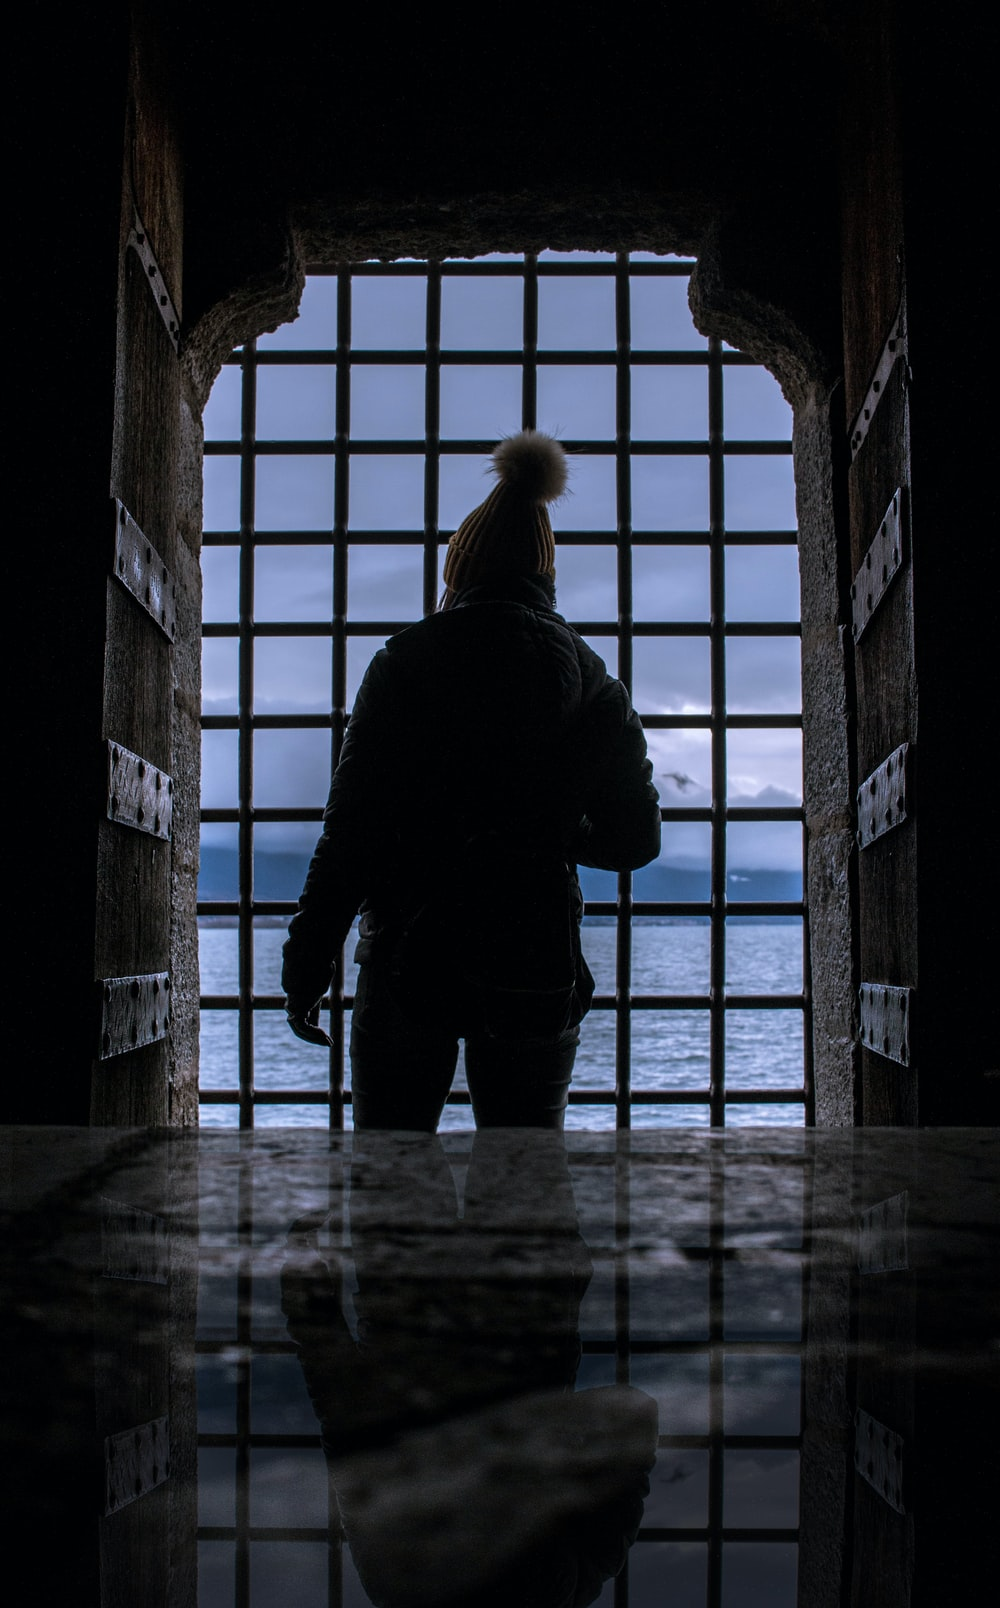 silhouette of person standing near gate